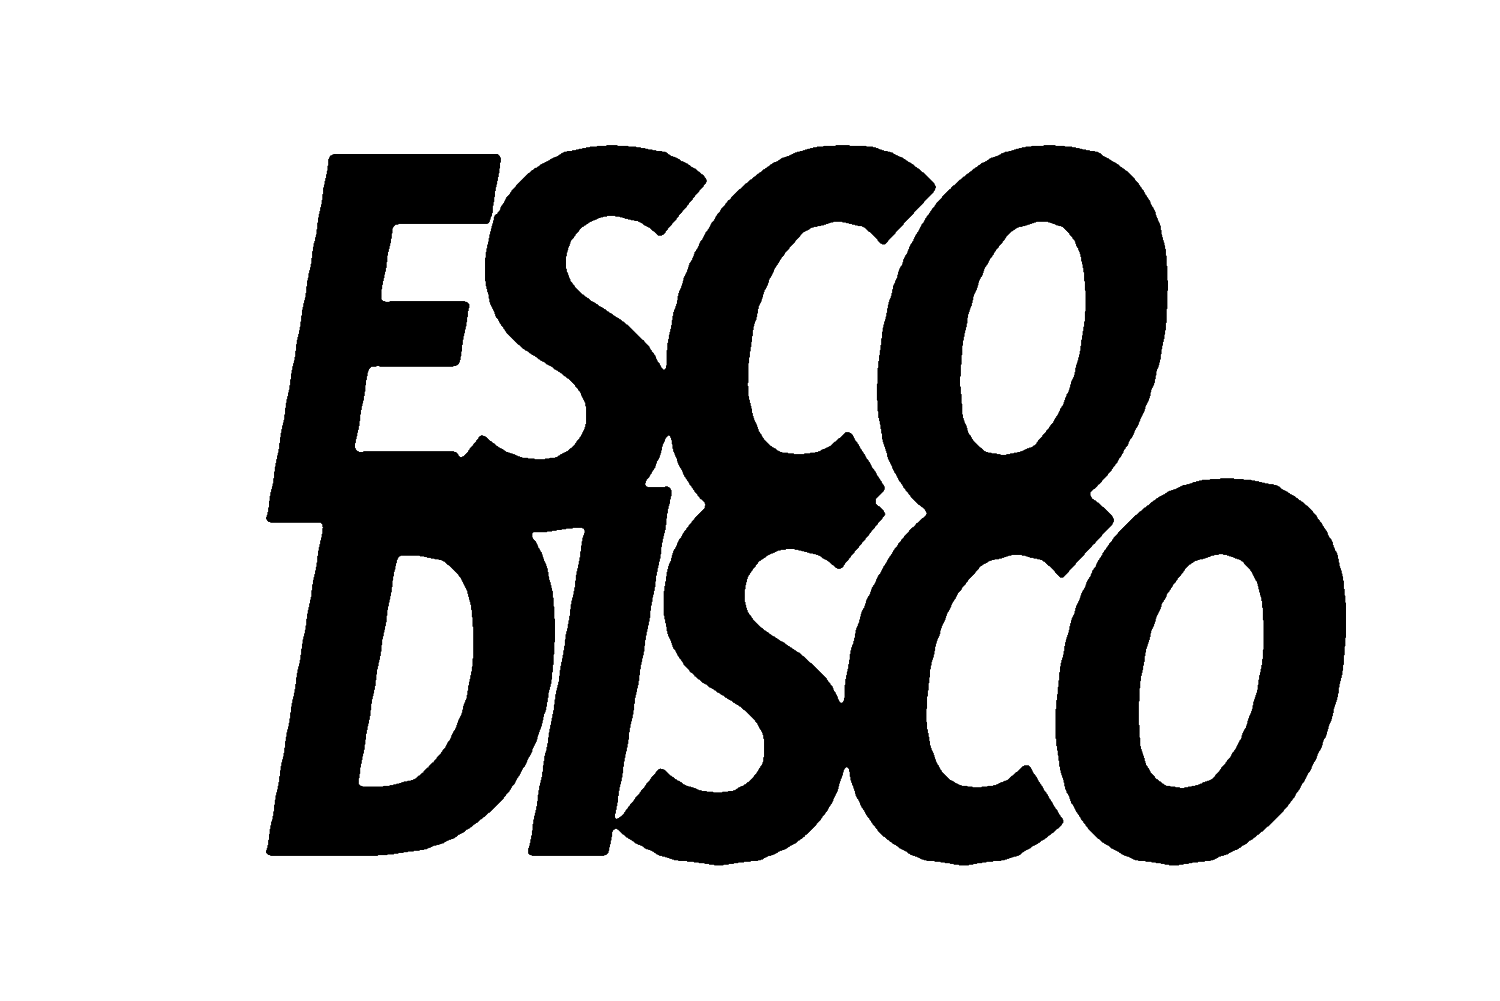 ESCODISCO